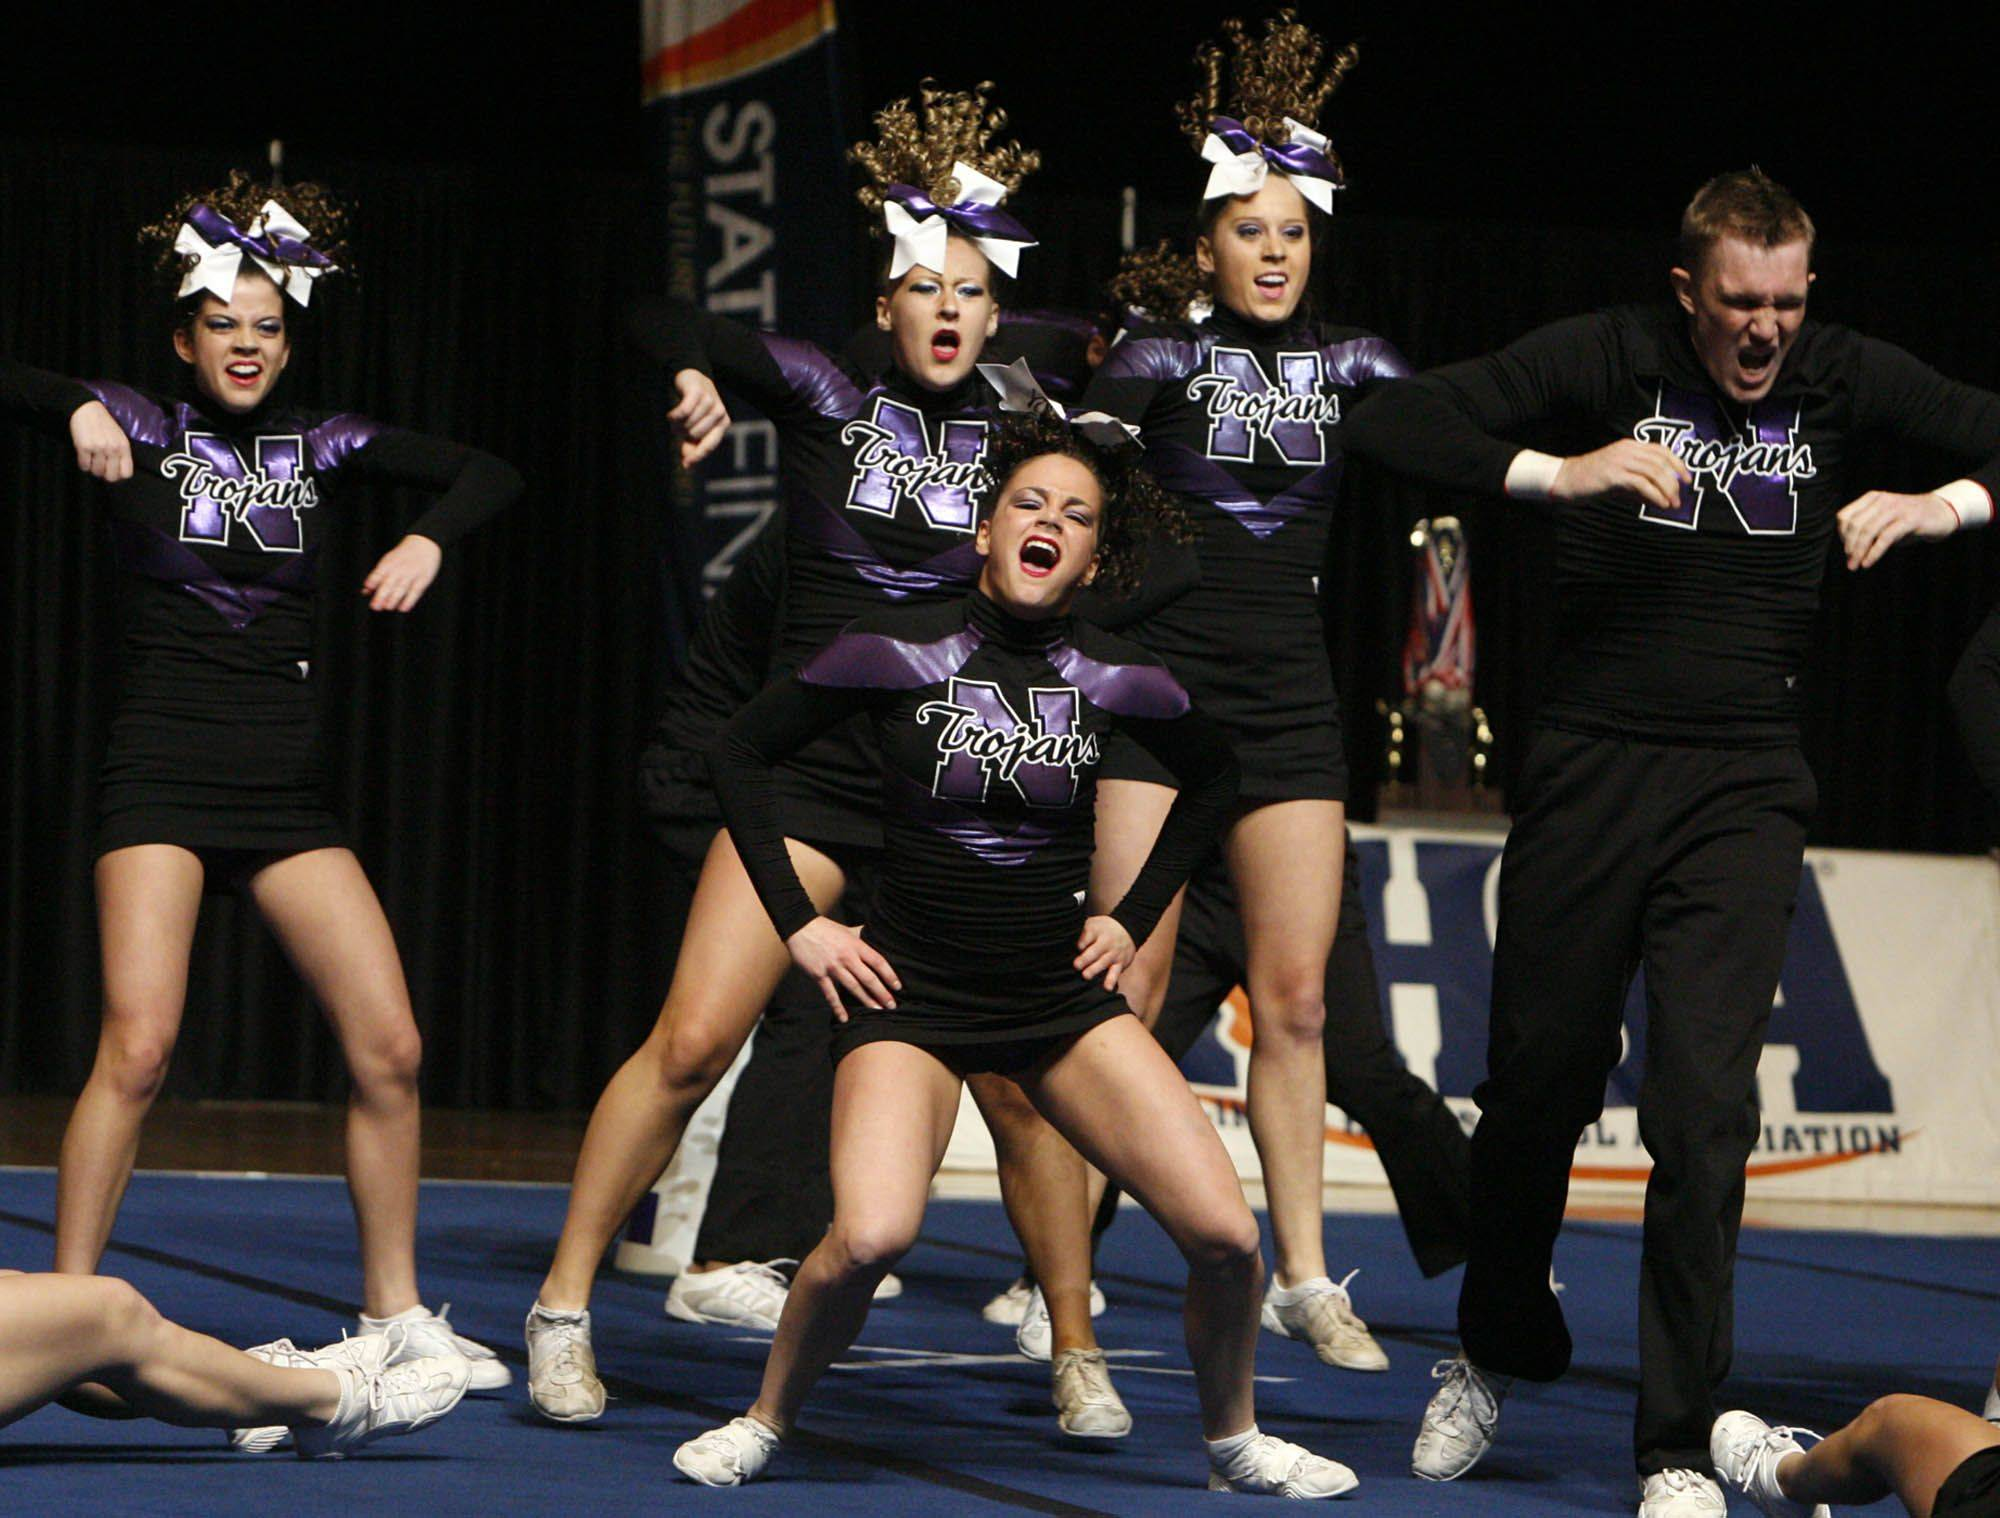 Downers Grove North performs at IHSA cheerleading state finals at U.S. Cellular Coliseum in Bloomington on Saturday, February 4th.